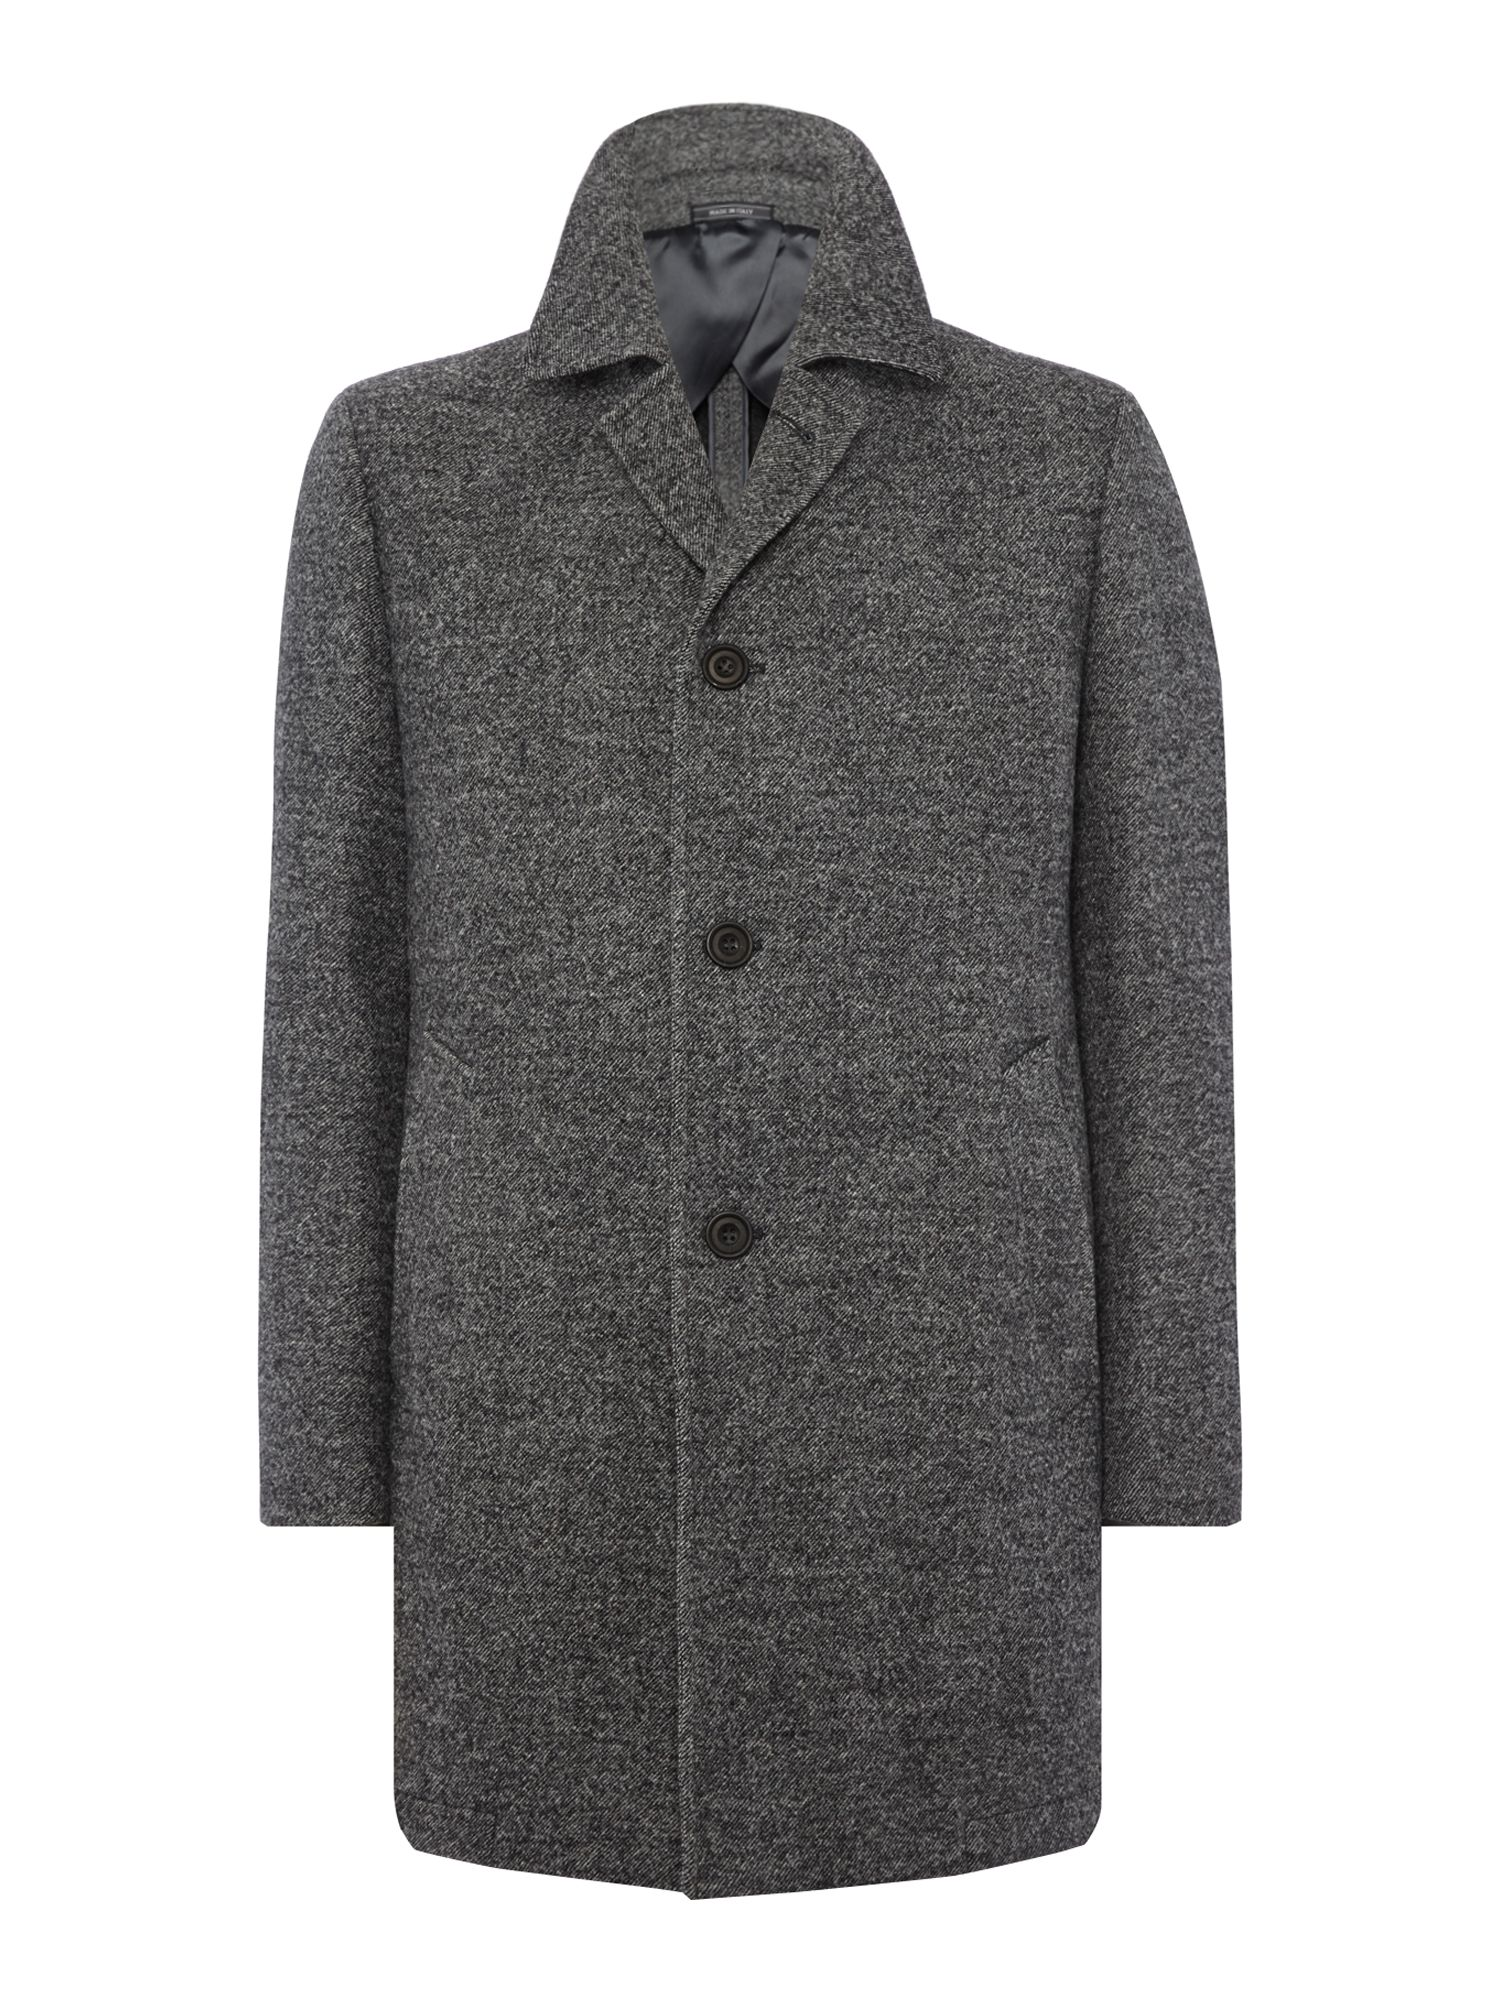 Chester Barrie Men's Chester Barrie Bayswater Check Topcoat, Grey